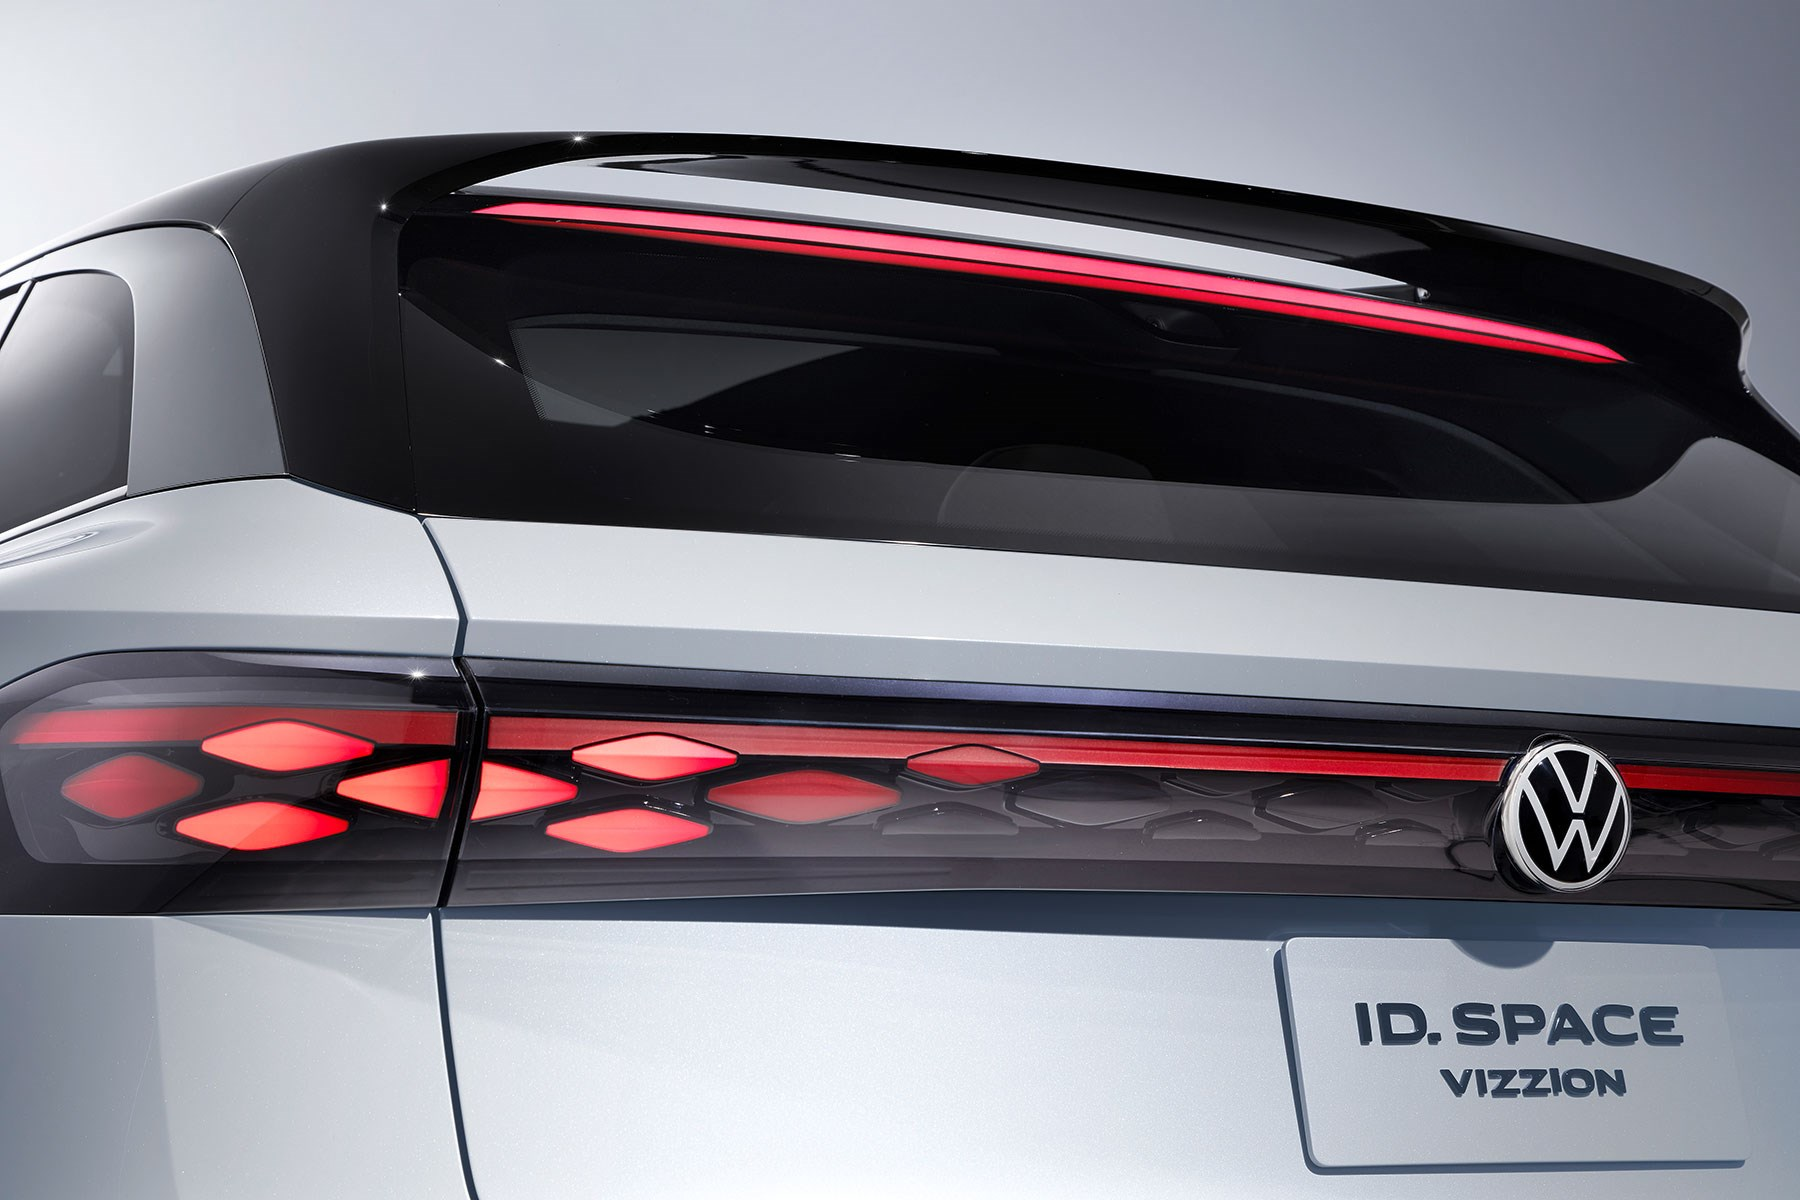 Wagon Love: Volkswagen ID Space Vizzion Previews Upcoming EV